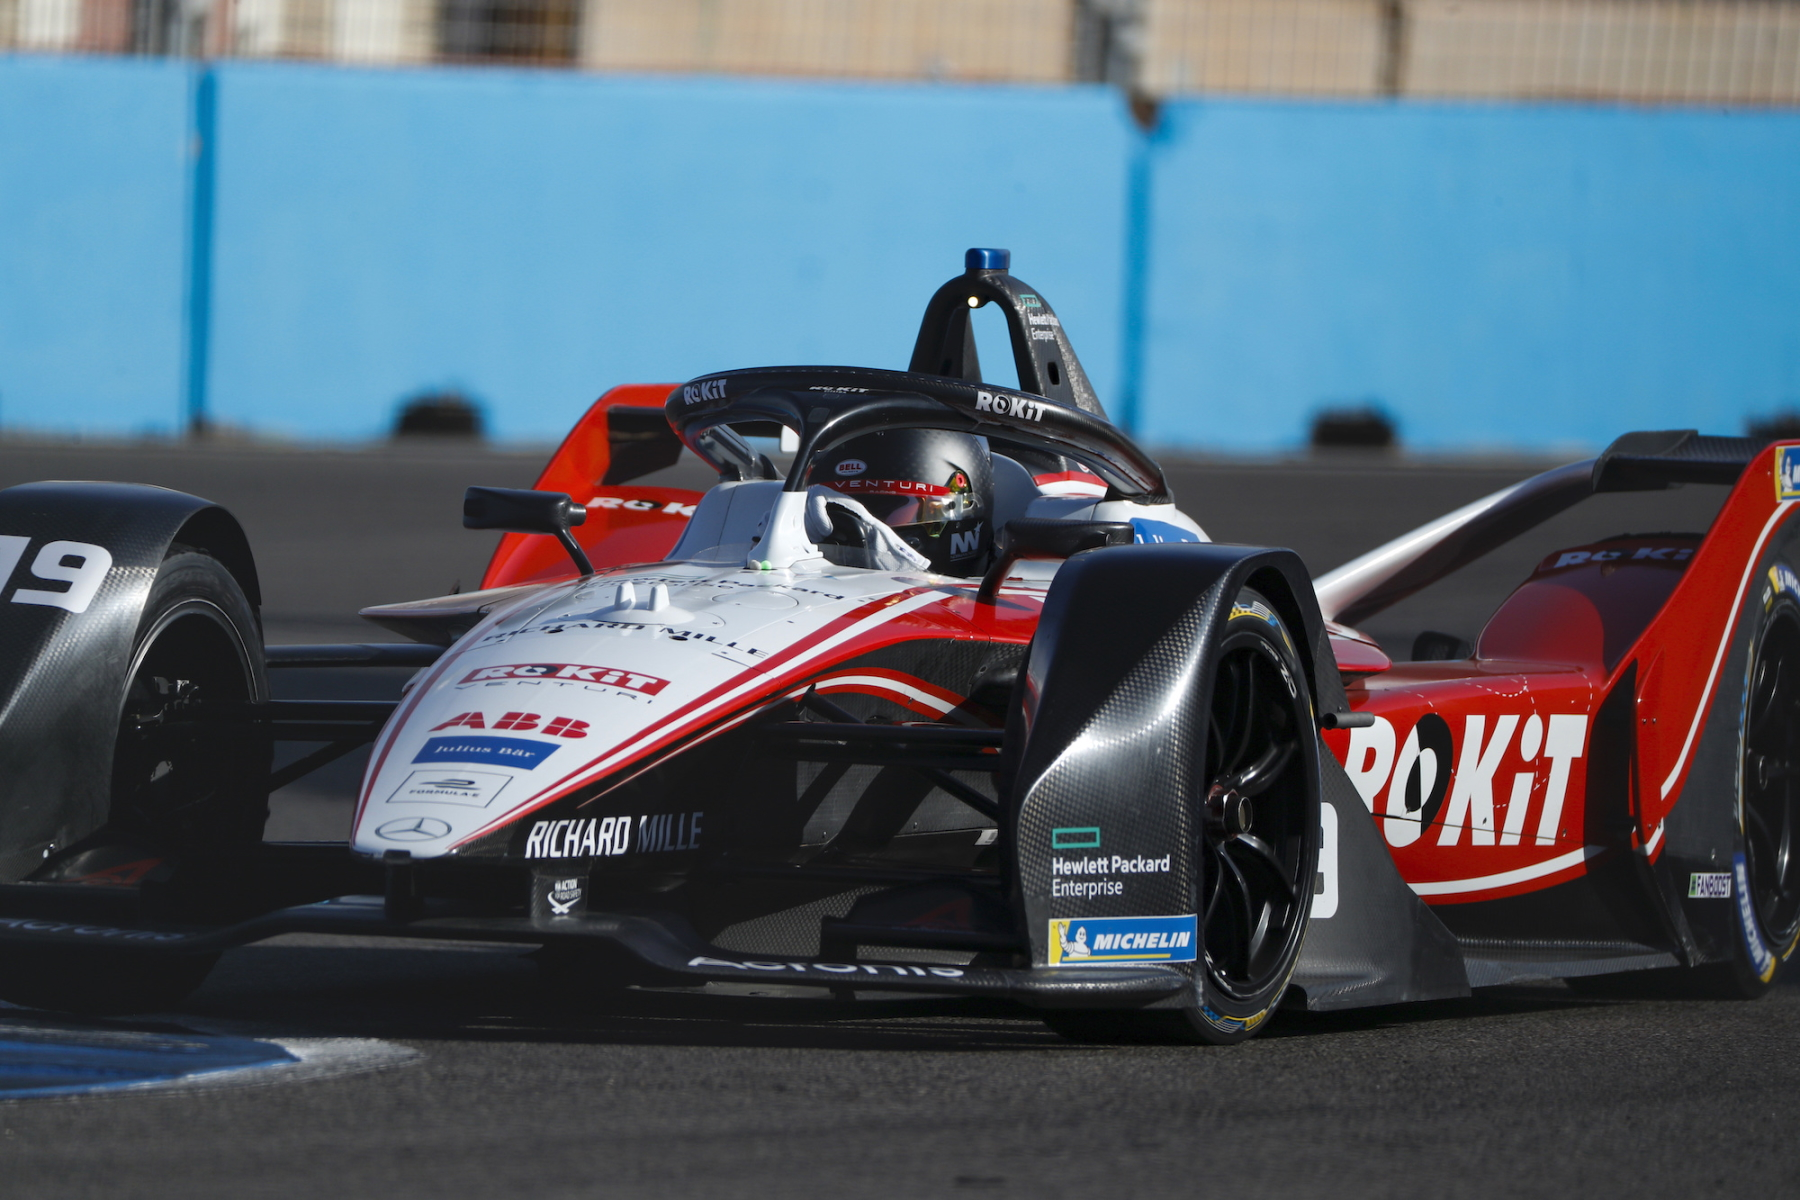 Norman-Nato-ROKiT-Venturi-Racing-Rookie-Test-Marrakesch-2020